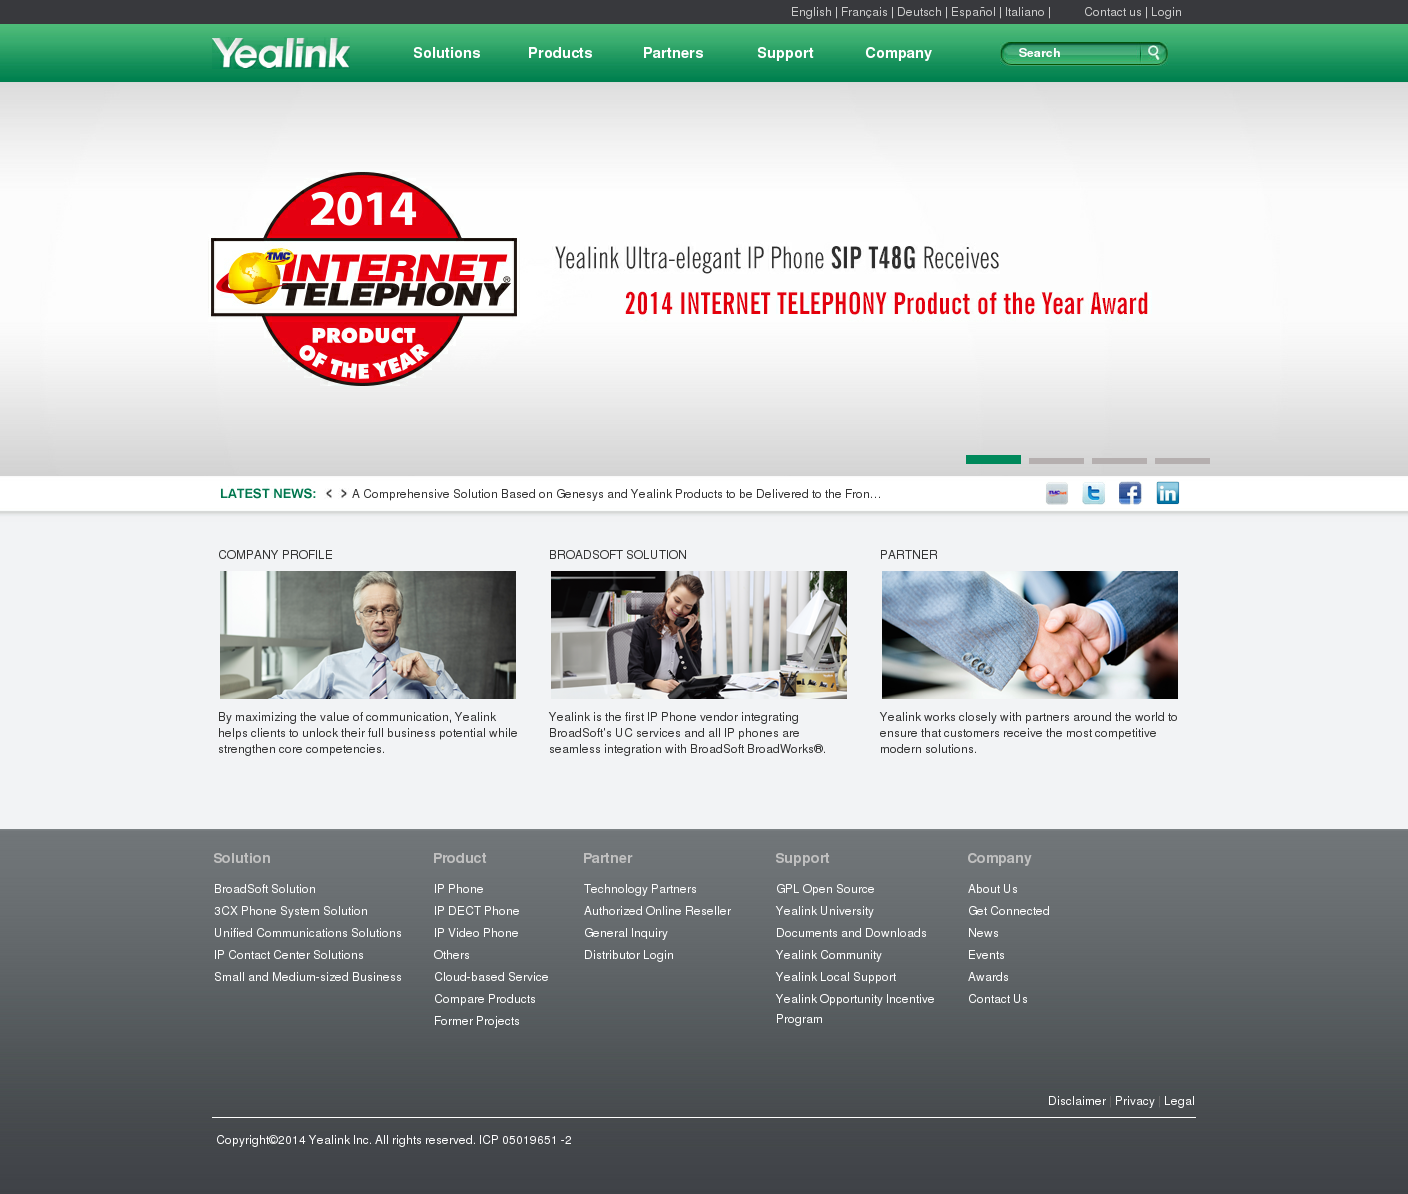 Yealink Competitors, Revenue and Employees - Owler Company Profile